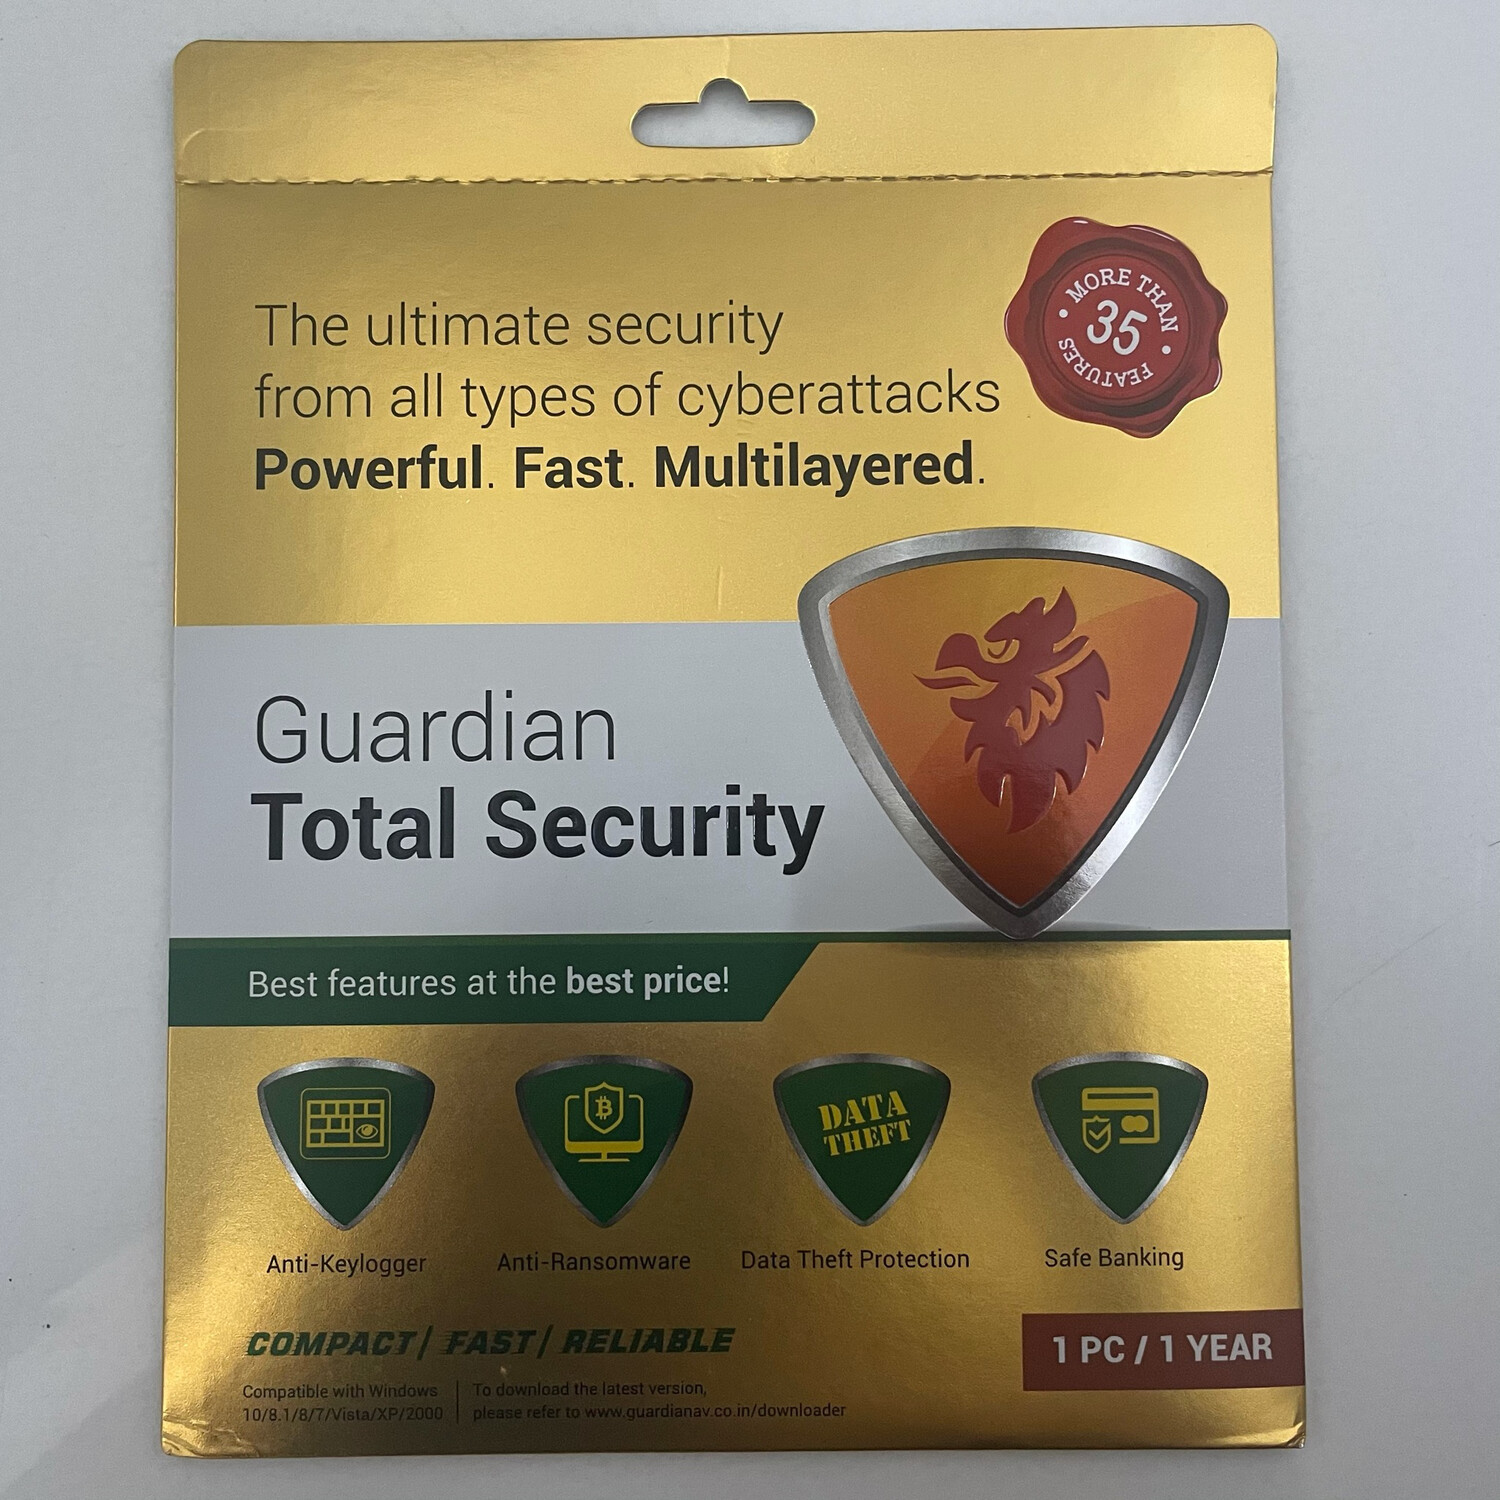 1 User, 1 Year, Guardian Total Security